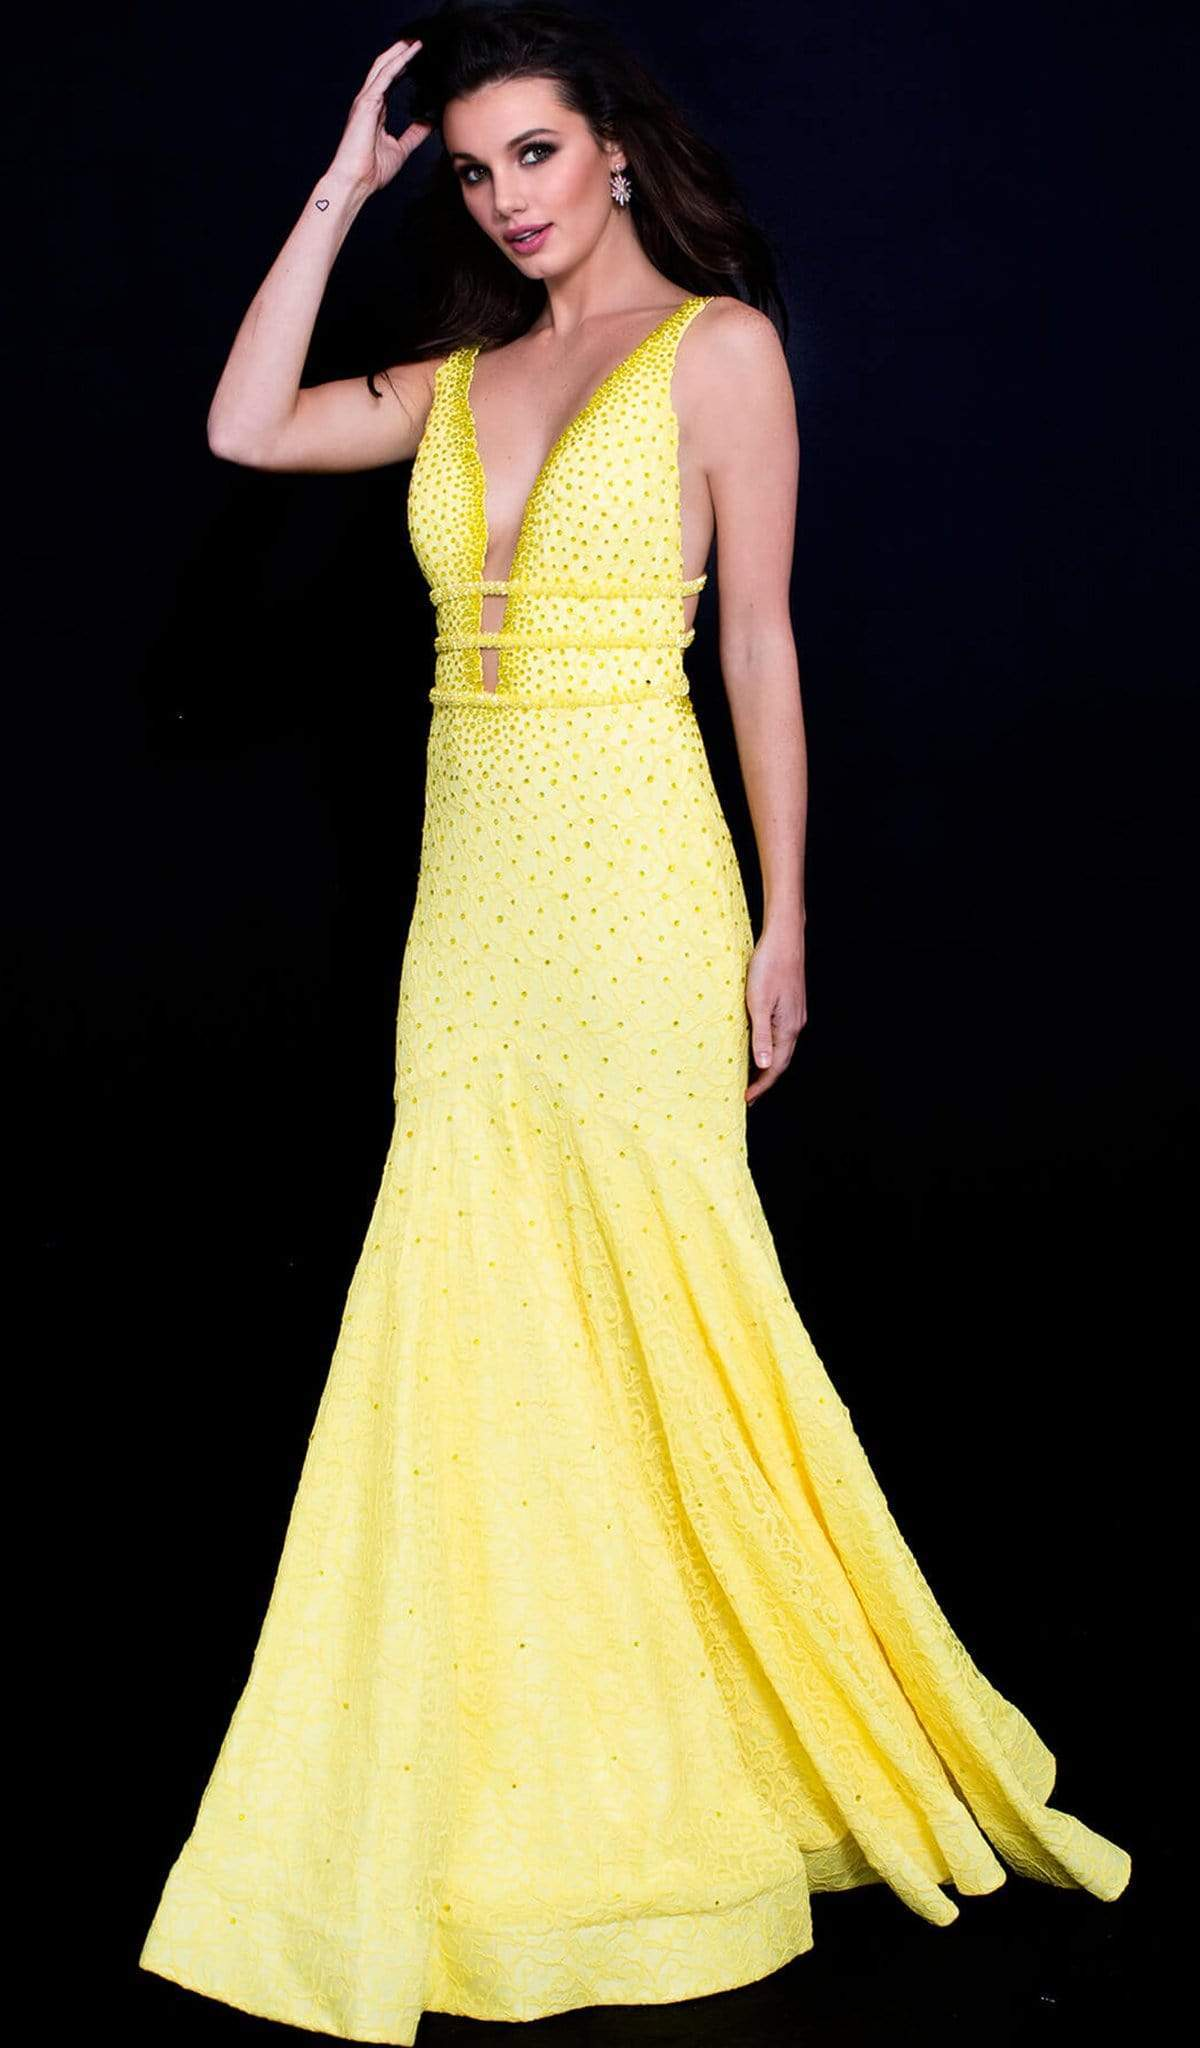 Jovani - 60191 Beaded Strappy Plunging Gown Special Occasion Dress 00 / Yellow